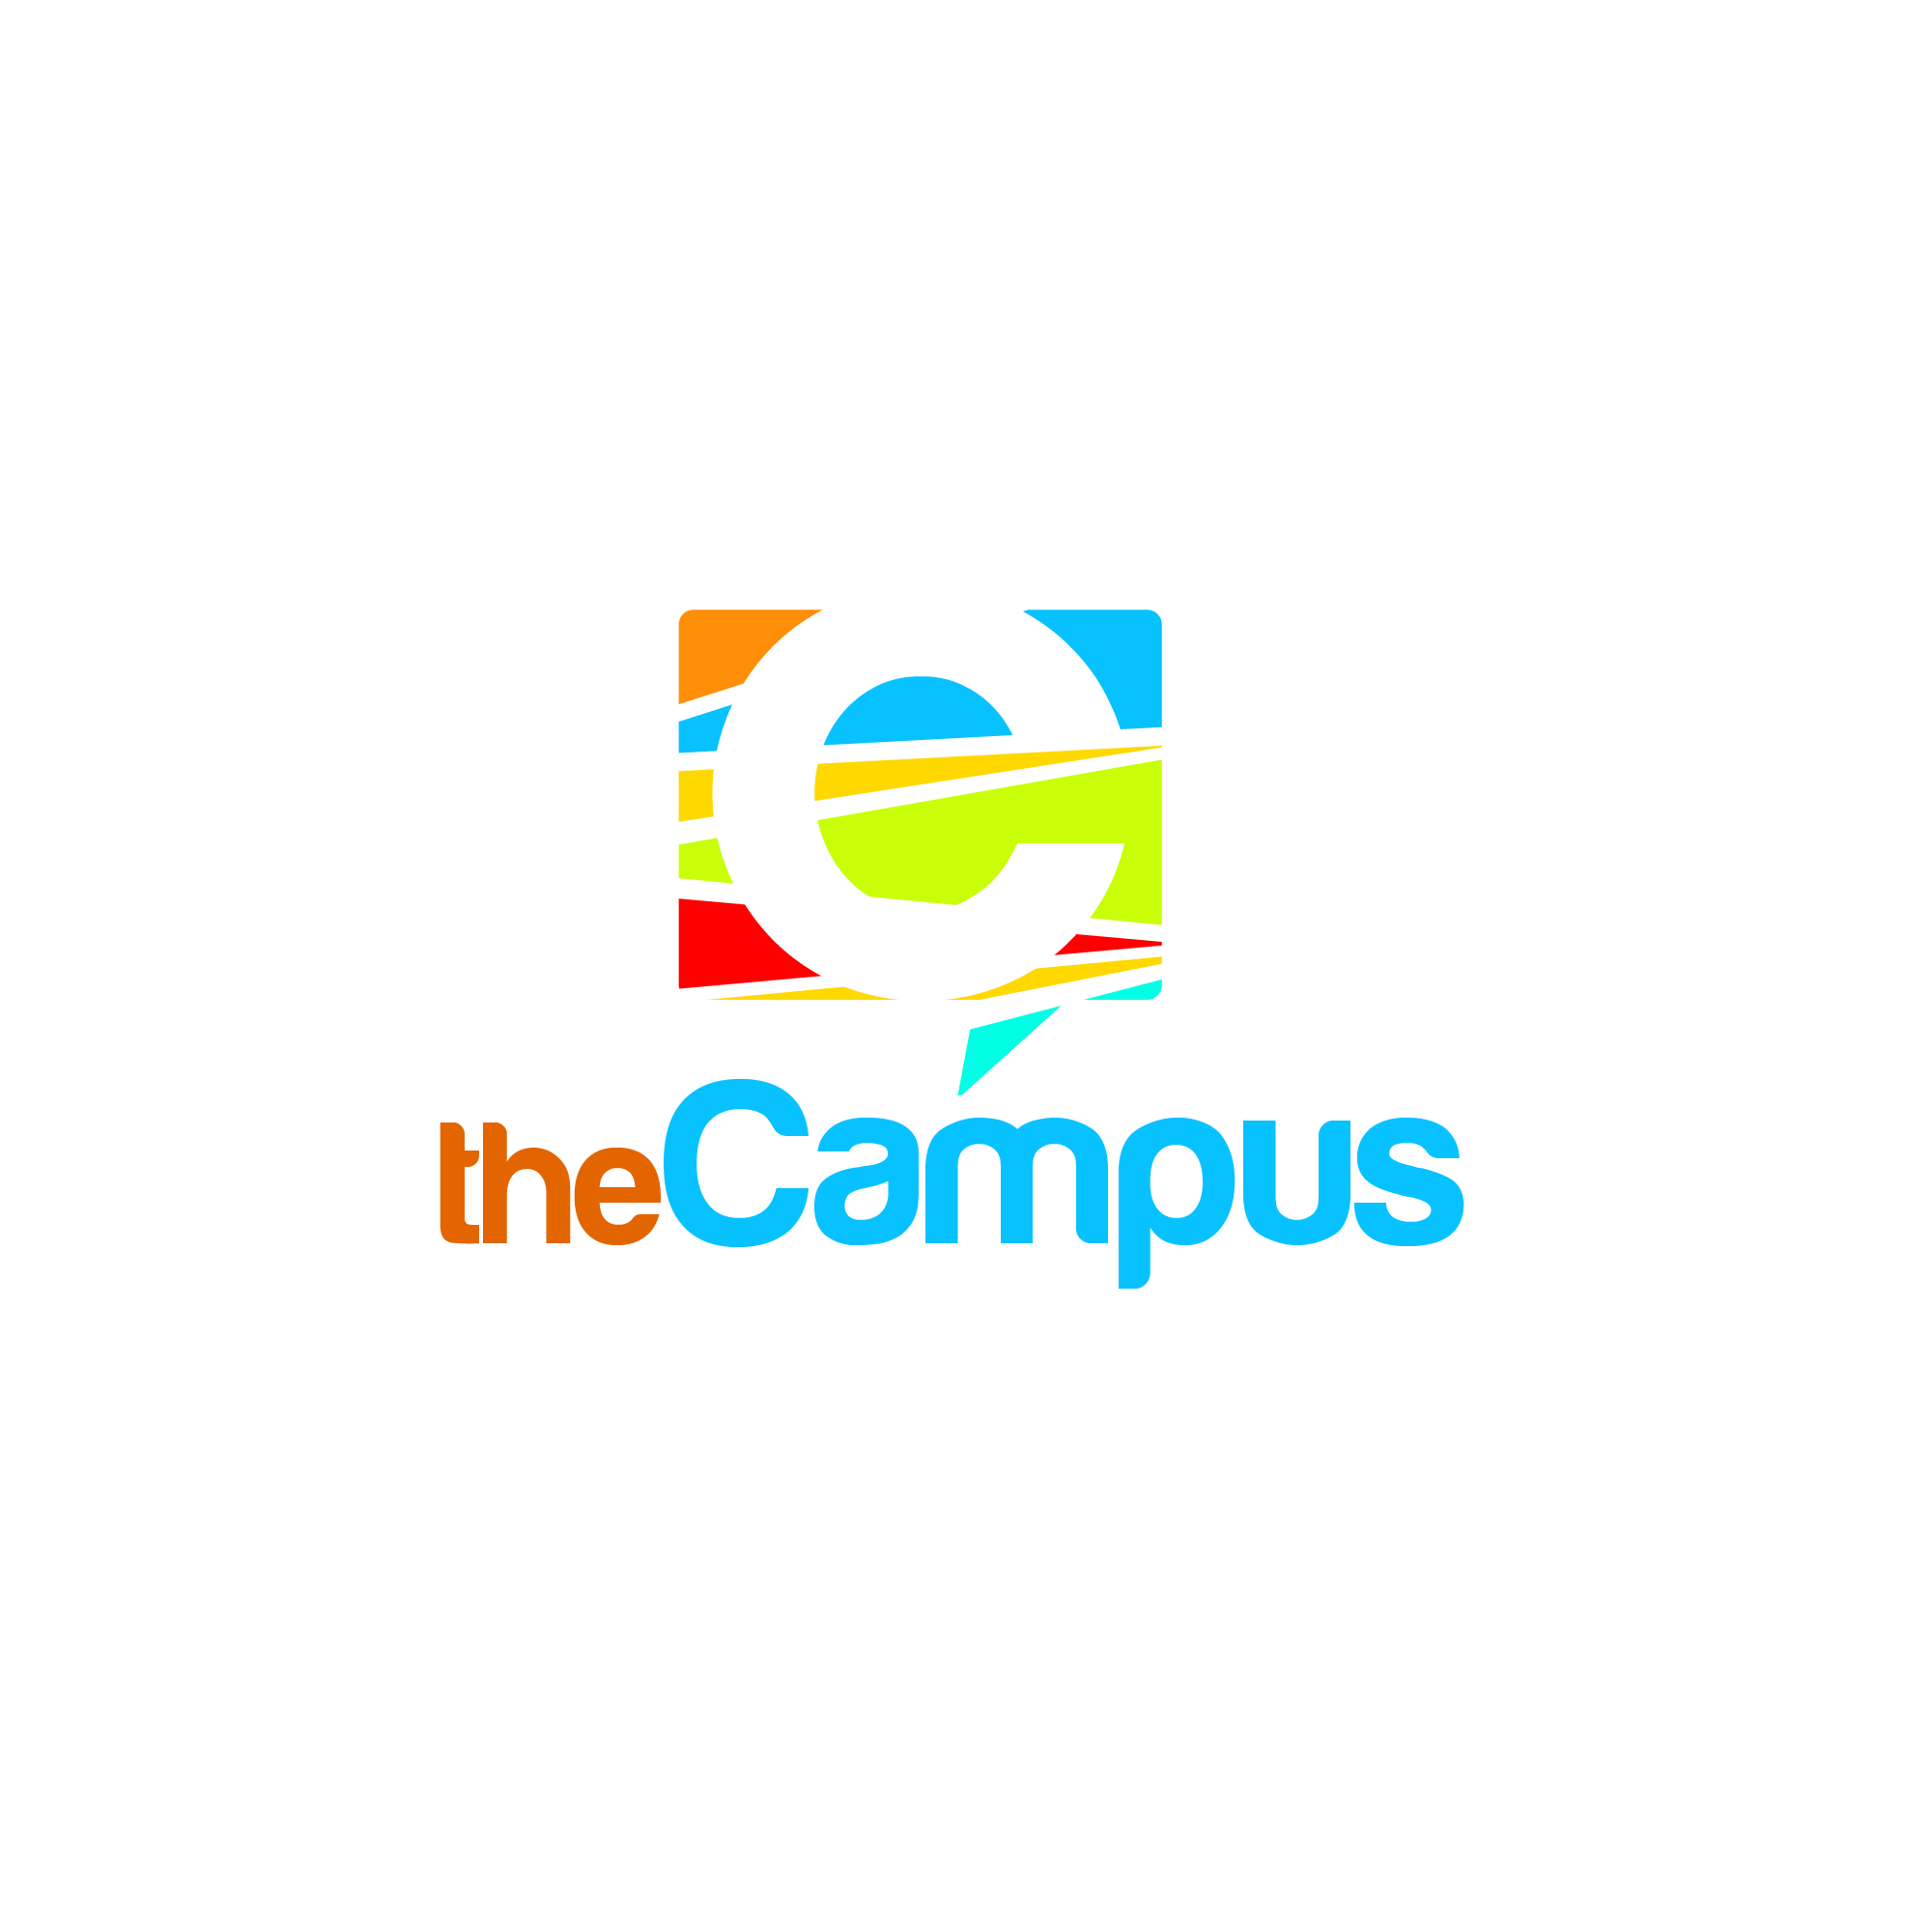 Logo Design by Kenneth Joel - Entry No. 115 in the Logo Design Contest theCampus Logo Design.